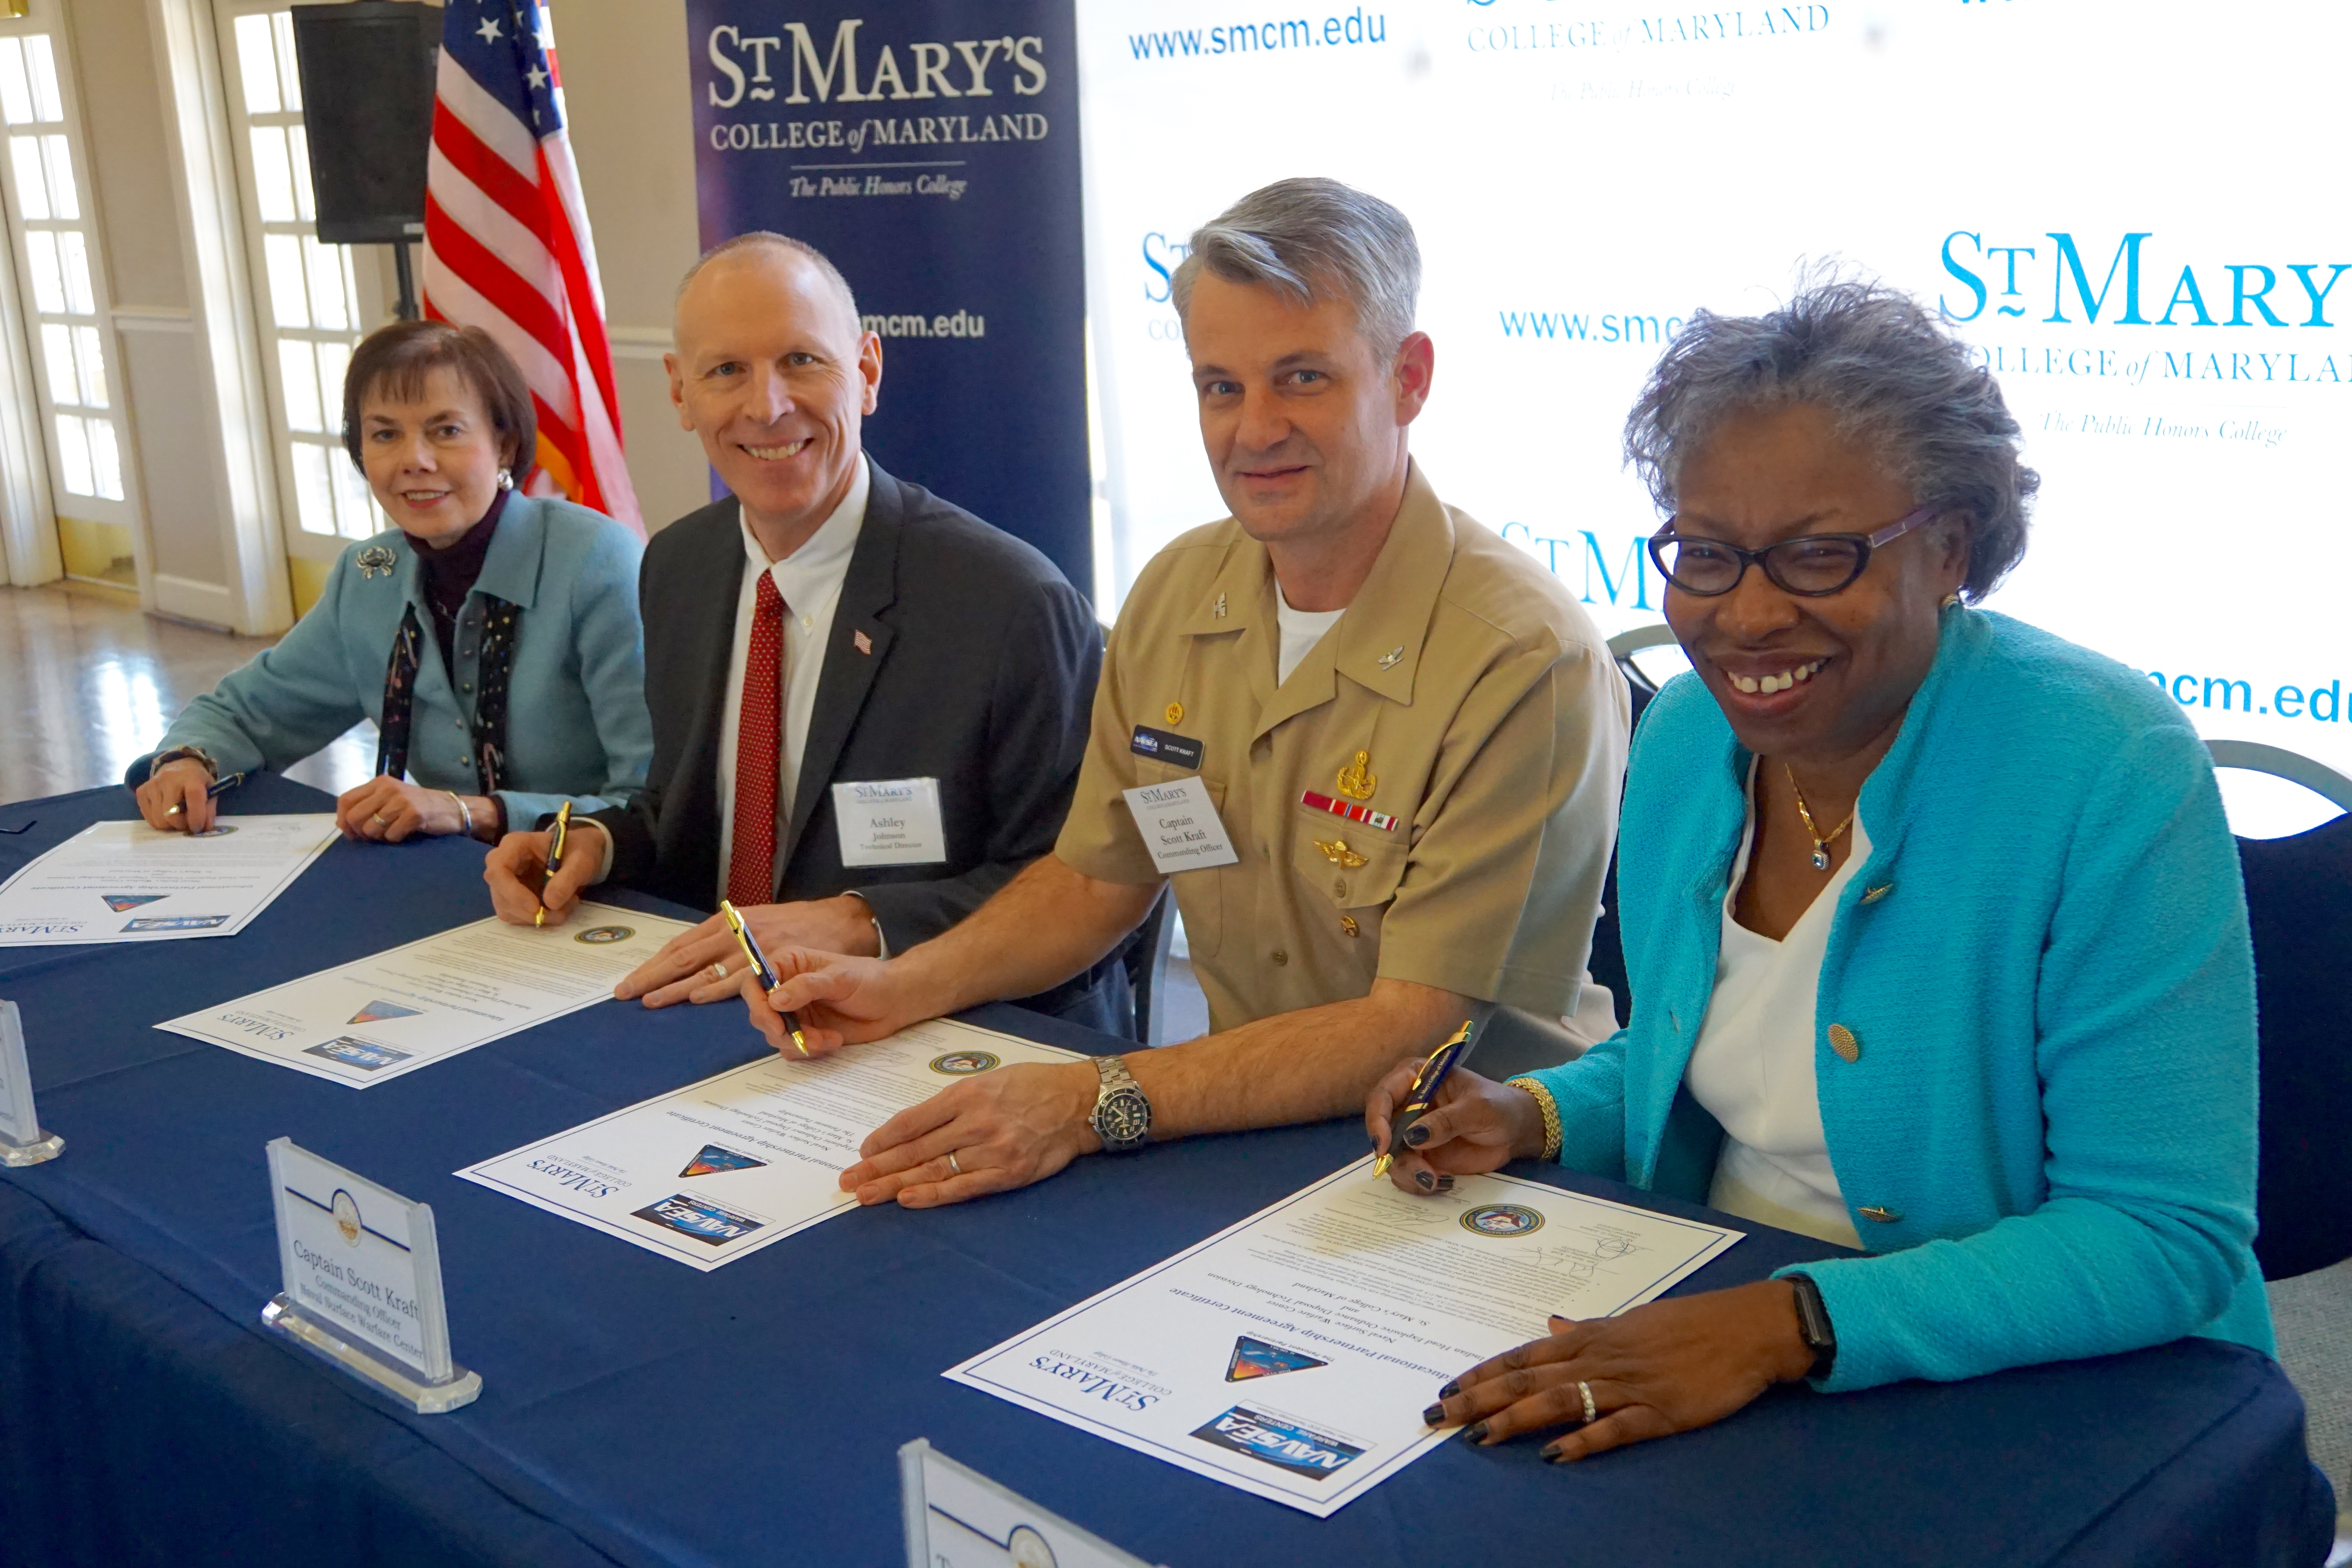 (L-R) Bonnie Green, executive director, The Patuxent Partnership; Ashley Johnson, NSWC IHEODTD technical director; Scott Kraft, NSWC IHEODTD commanding officer; Tuajuanda C. Jordan, St. Mary's College president pictured